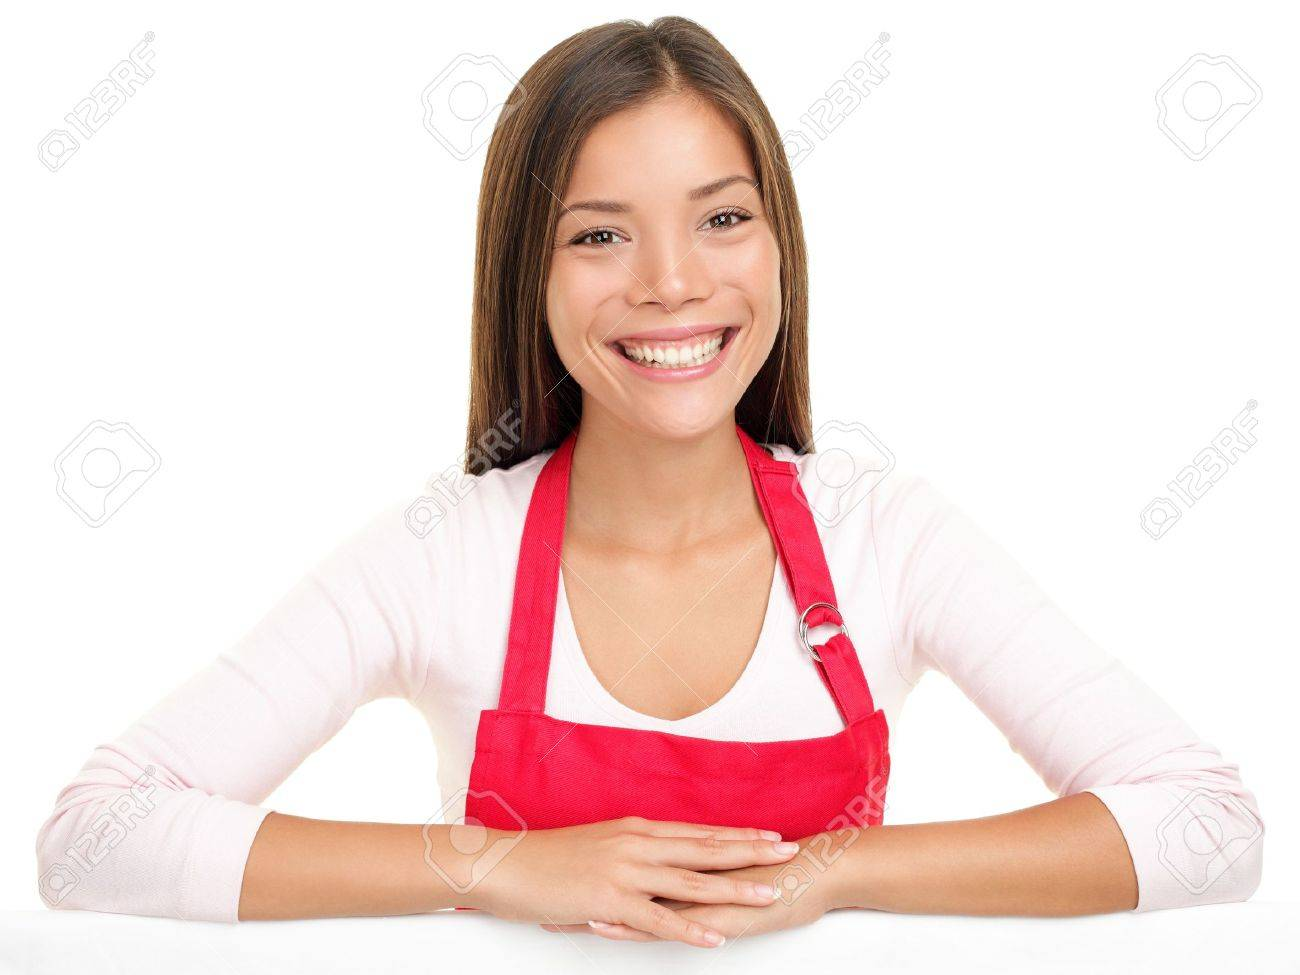 apron w  sales assistant clerk smiling happy with arms on    stock photo   apron w   s assistant clerk smiling happy   arms on edge for sign or similar  beautiful content and joyful female model isolated on